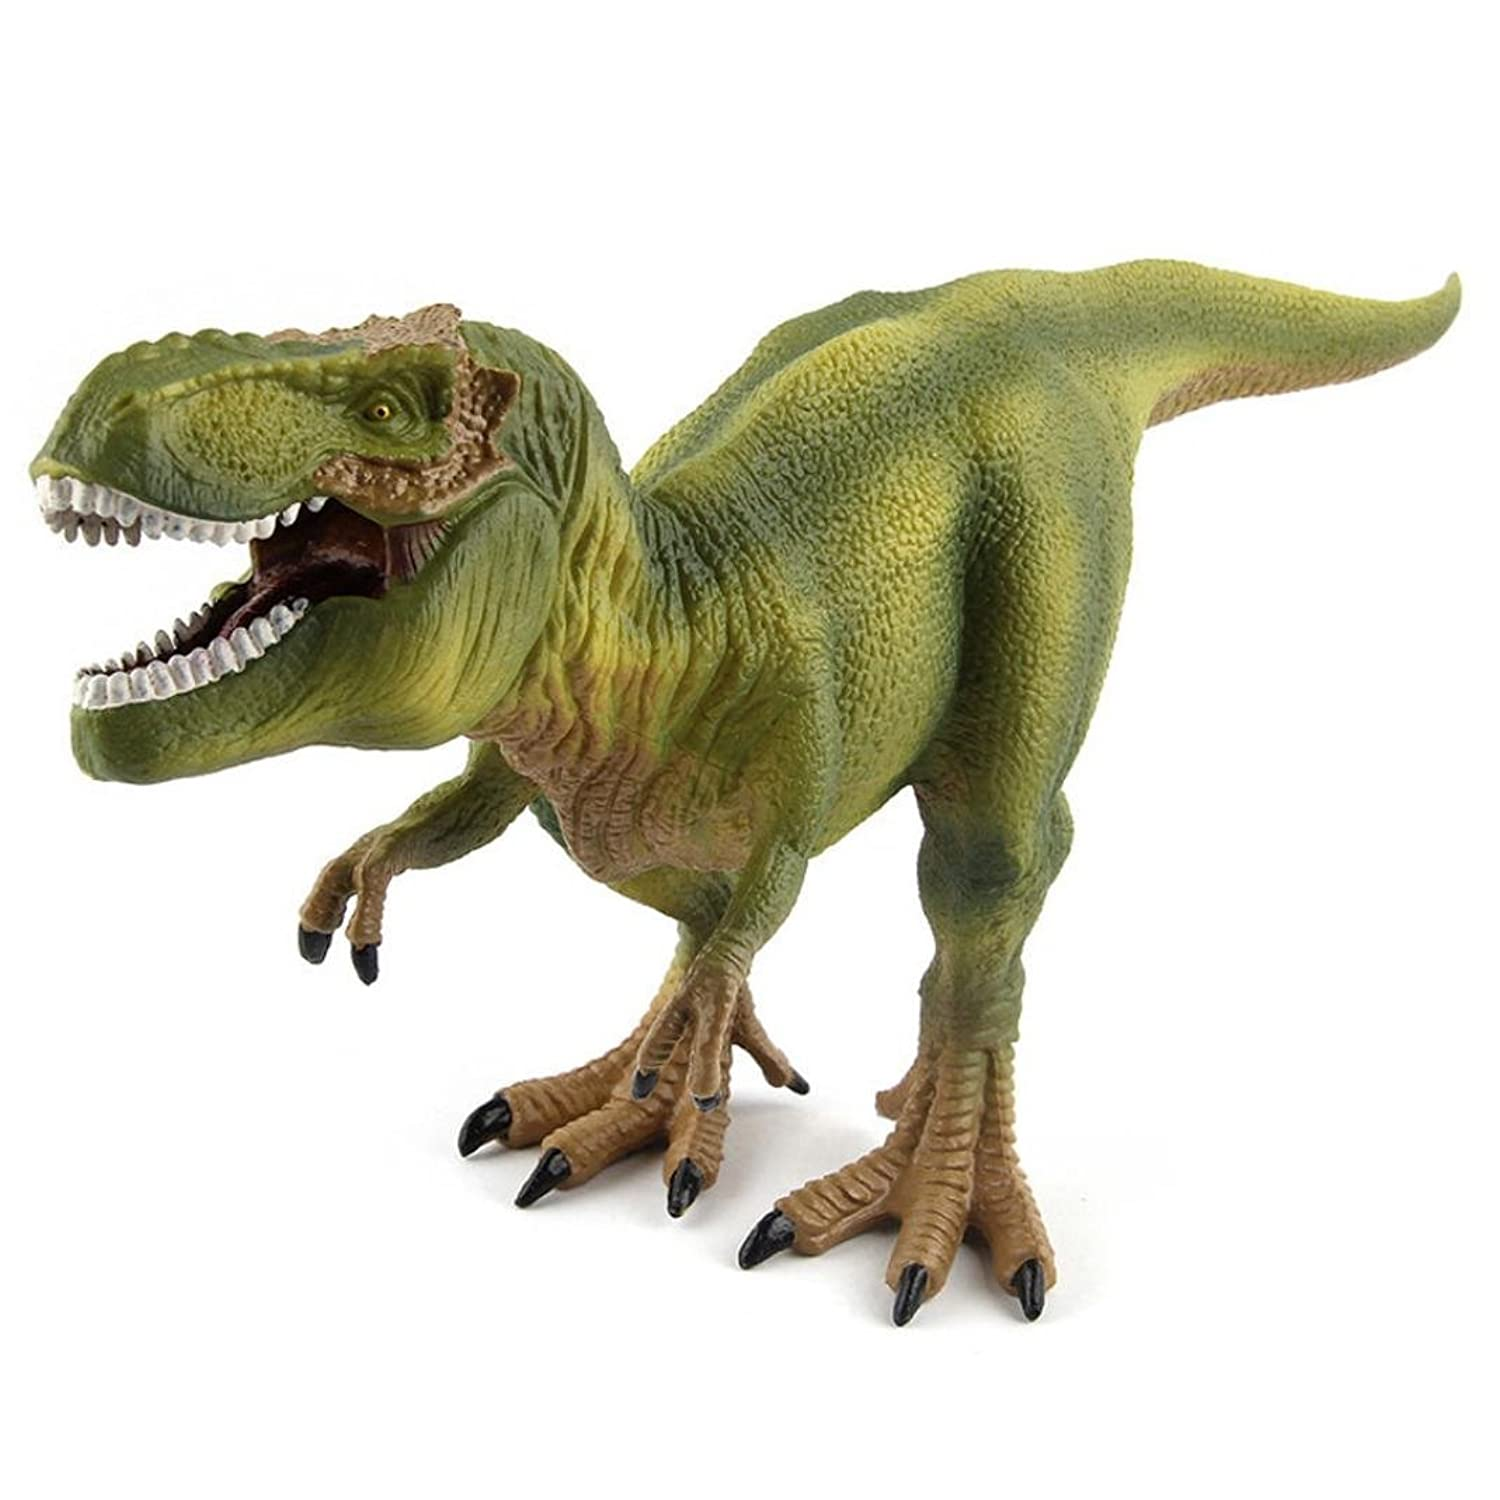 Amiley Hot Sale Educational Simulated Dinosaurs Tyrannosaurus Rex Model Kids Toy Dinosaur Perfect Gift